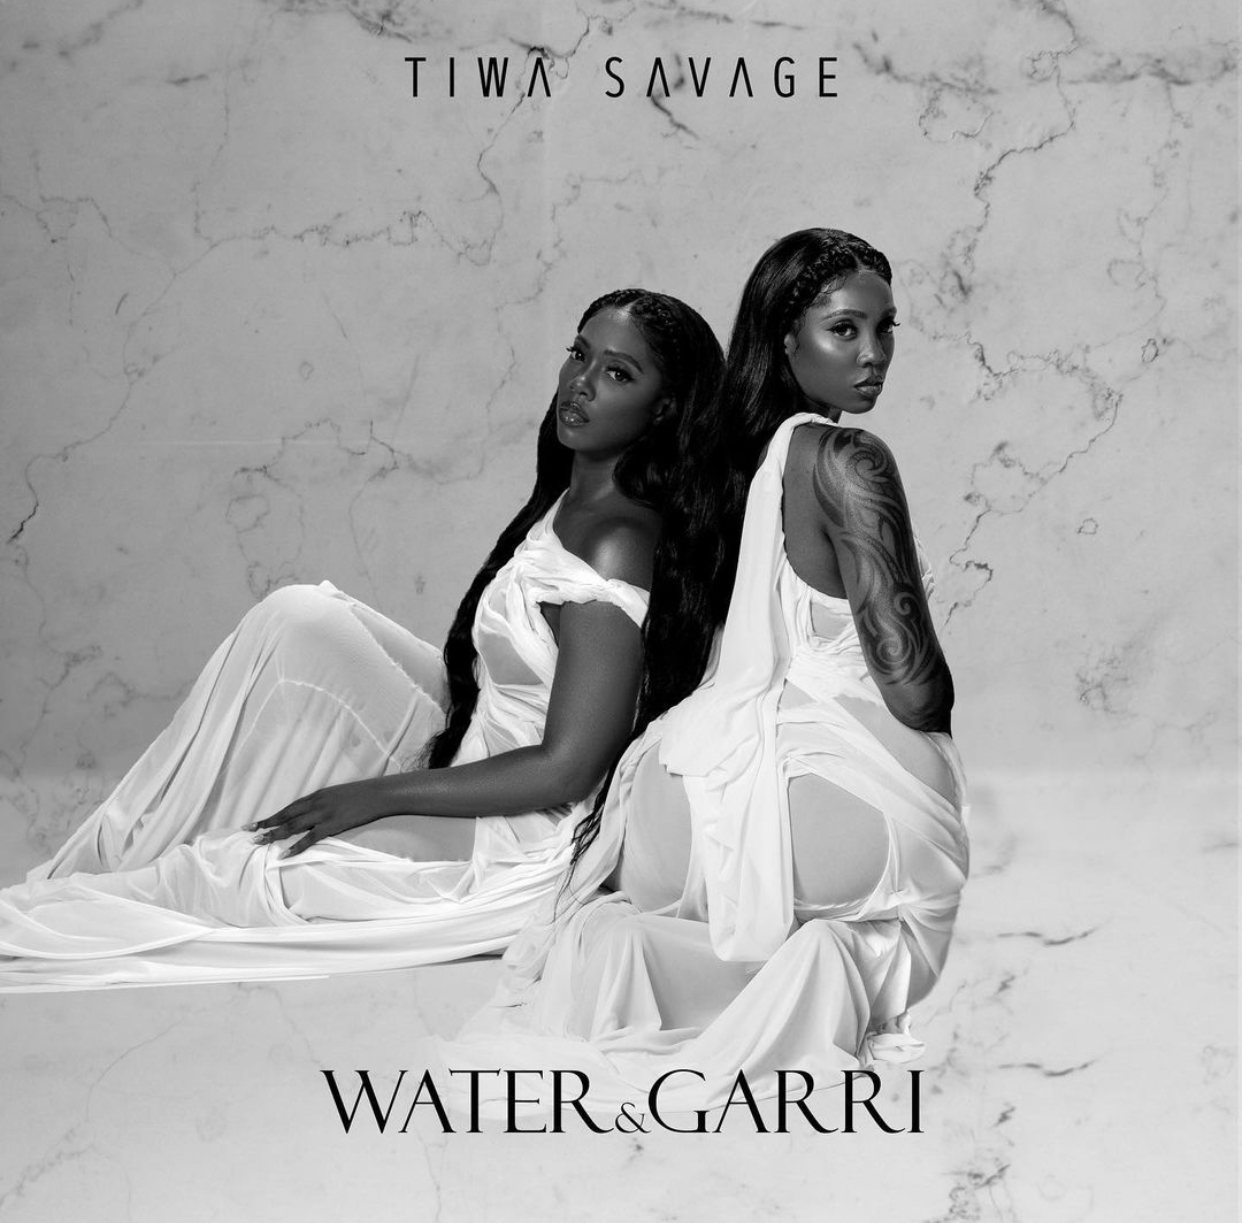 Tiwa Savage features Brandy in new 'Water and Garri' EP